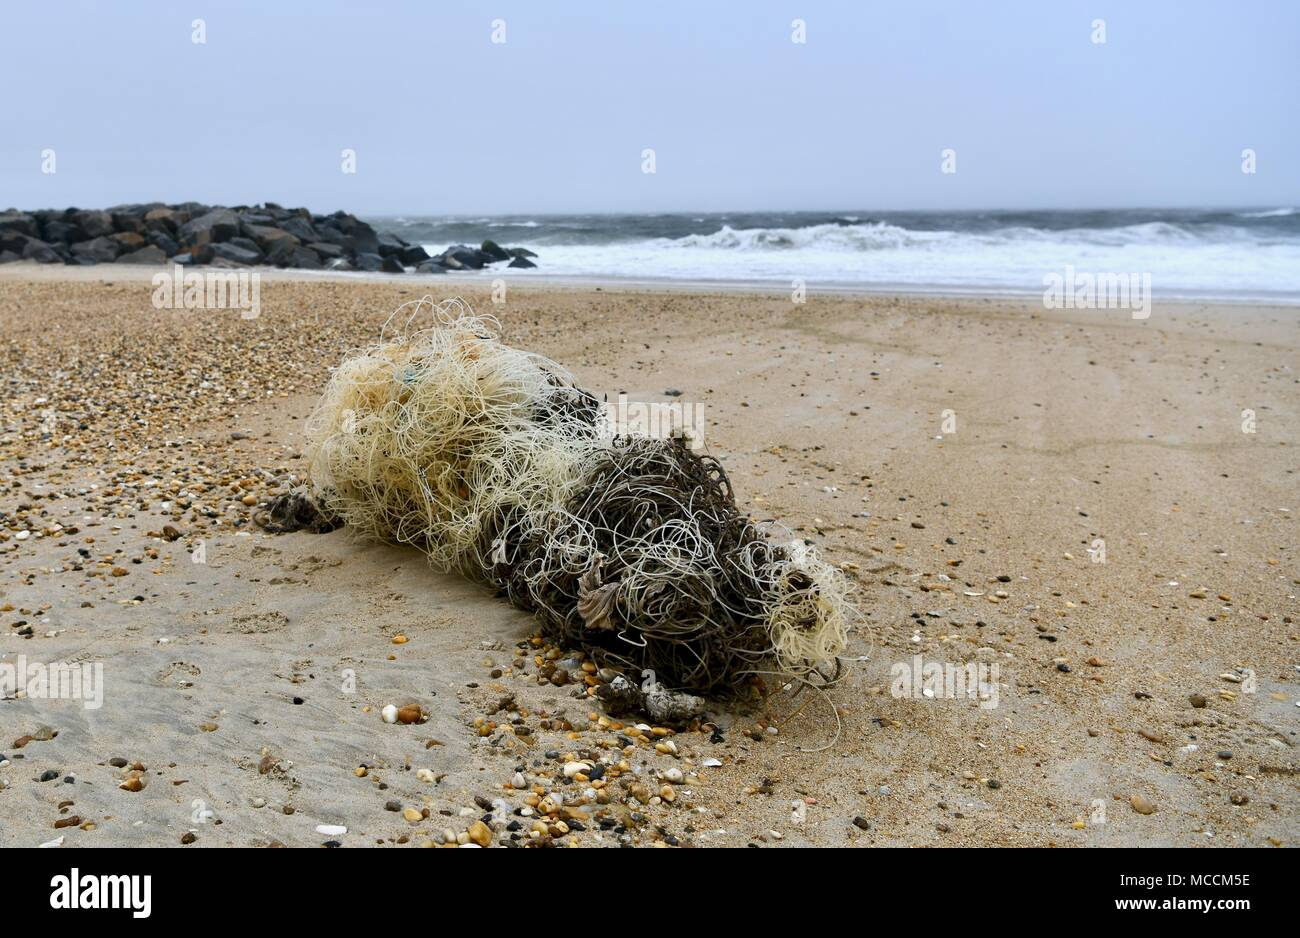 Large pile of tangled fishing line washed up on the shore of a remote beach at Cape Henlopen State Park, Delaware, USA - Stock Image